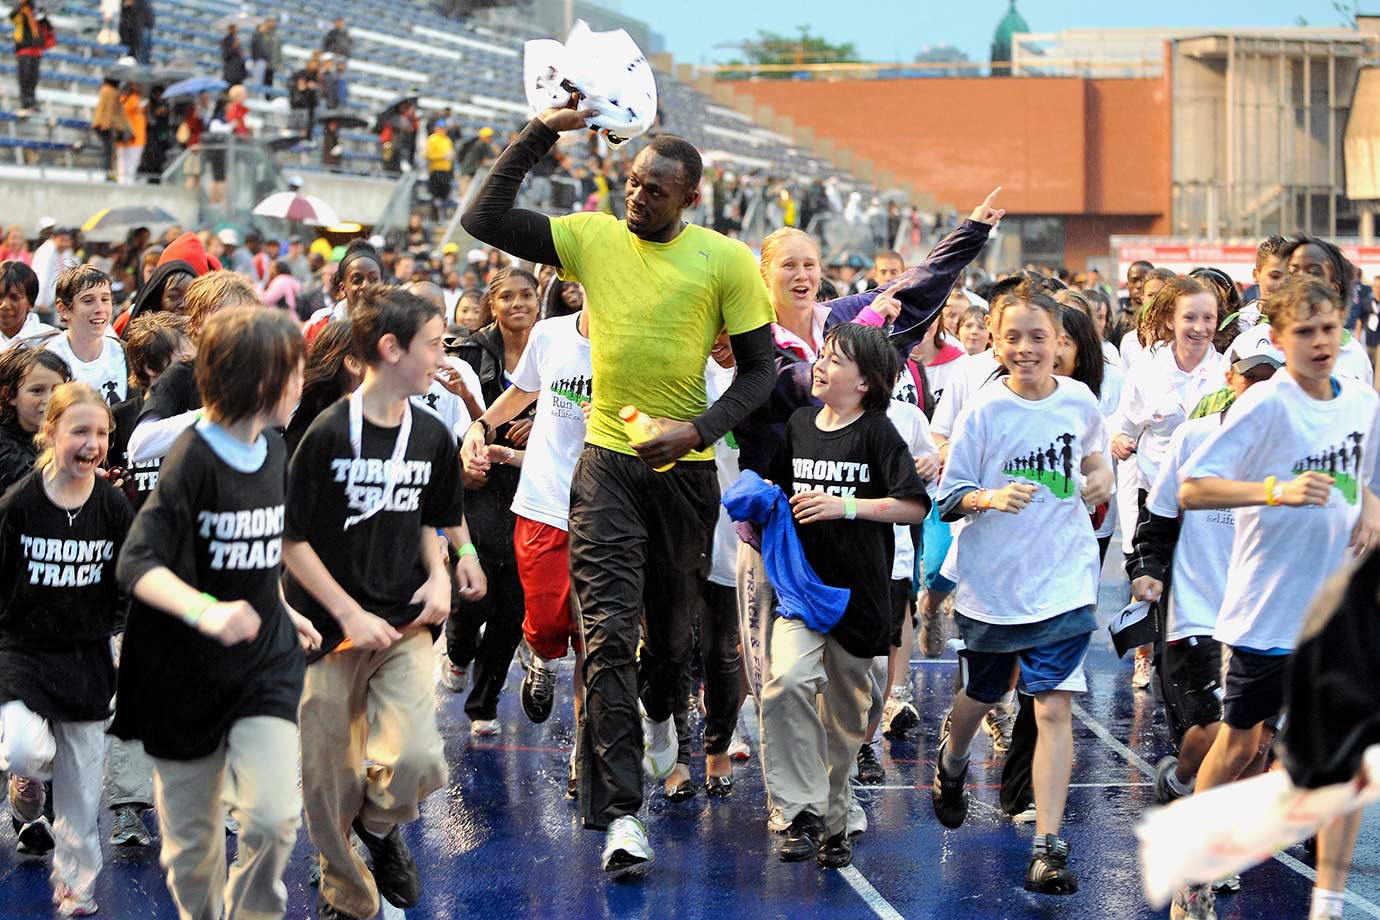 Usain Bolt runs the track with kids at the 2009 Festival of Excellence meet at Varsity Stadium on the University of Toronto Campus in Ontario, Canada.